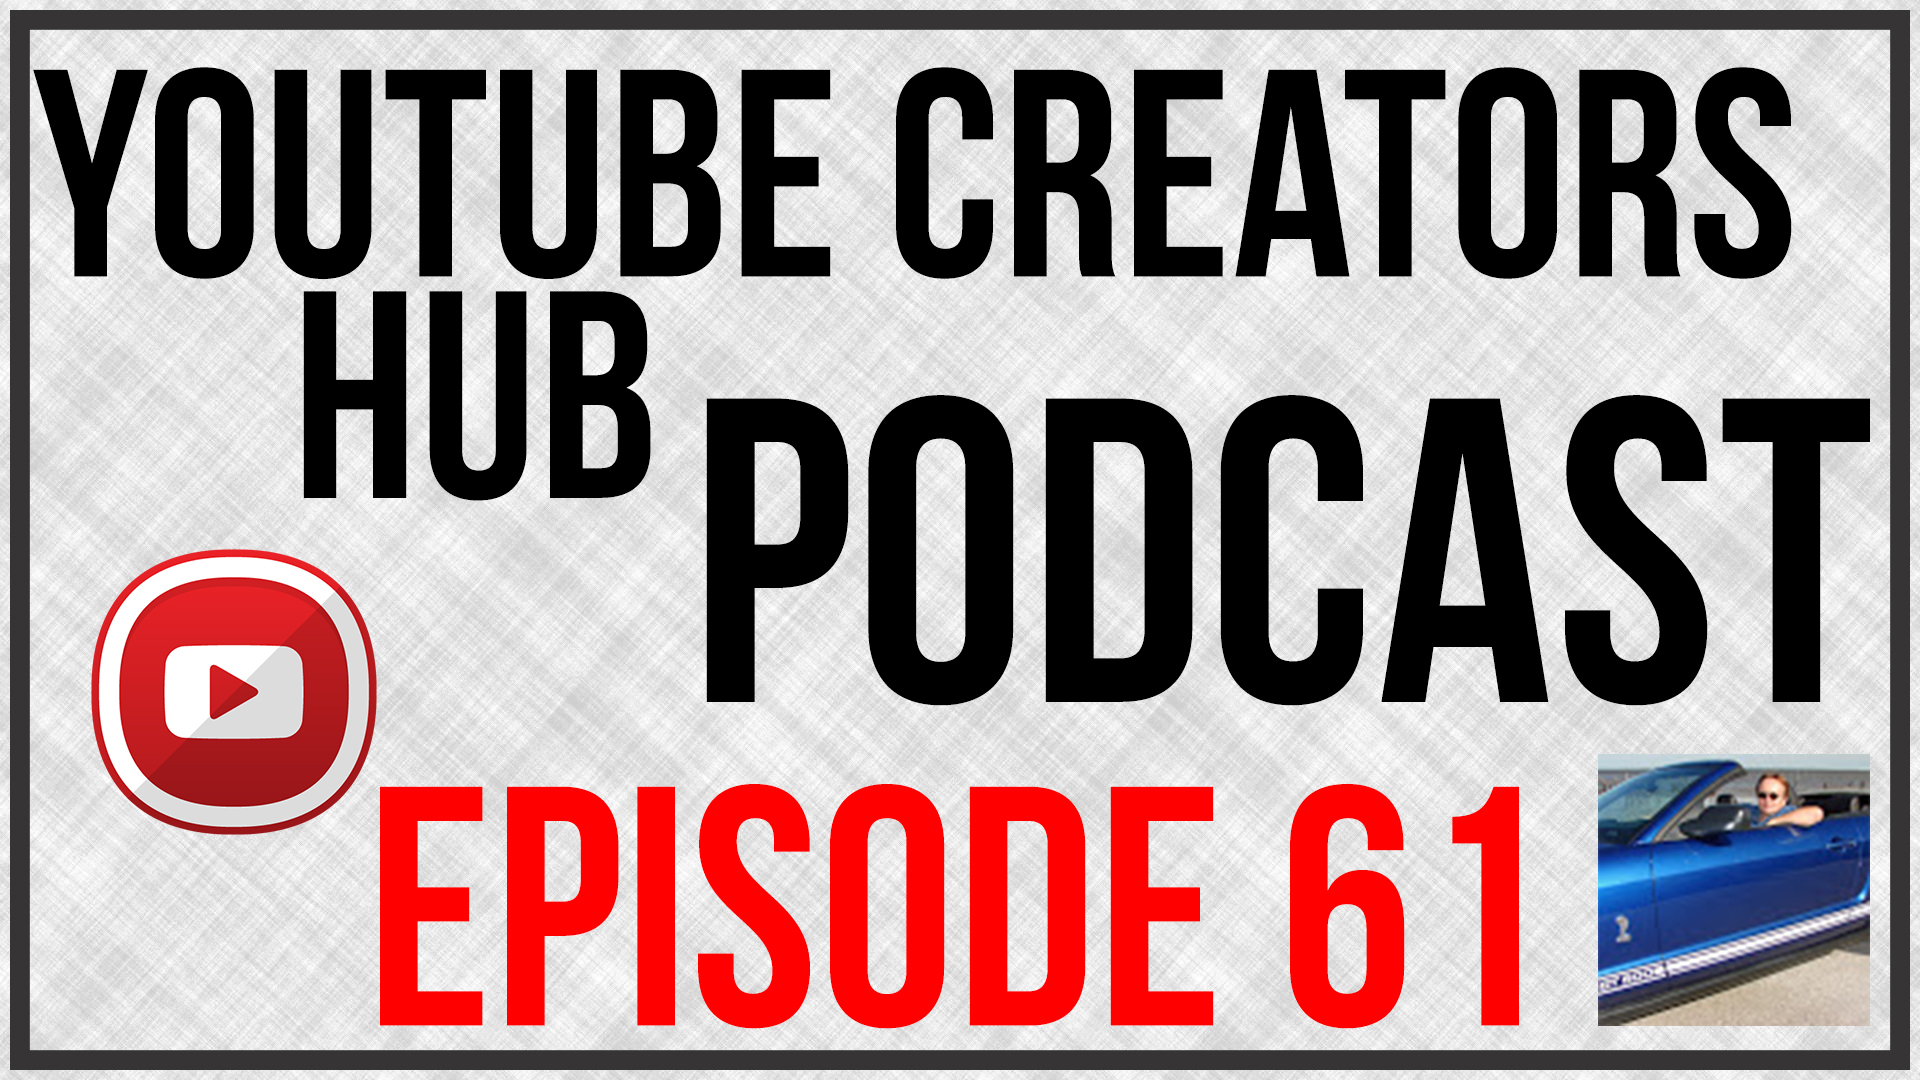 YouTube Creators Hub Podcast Episode 61